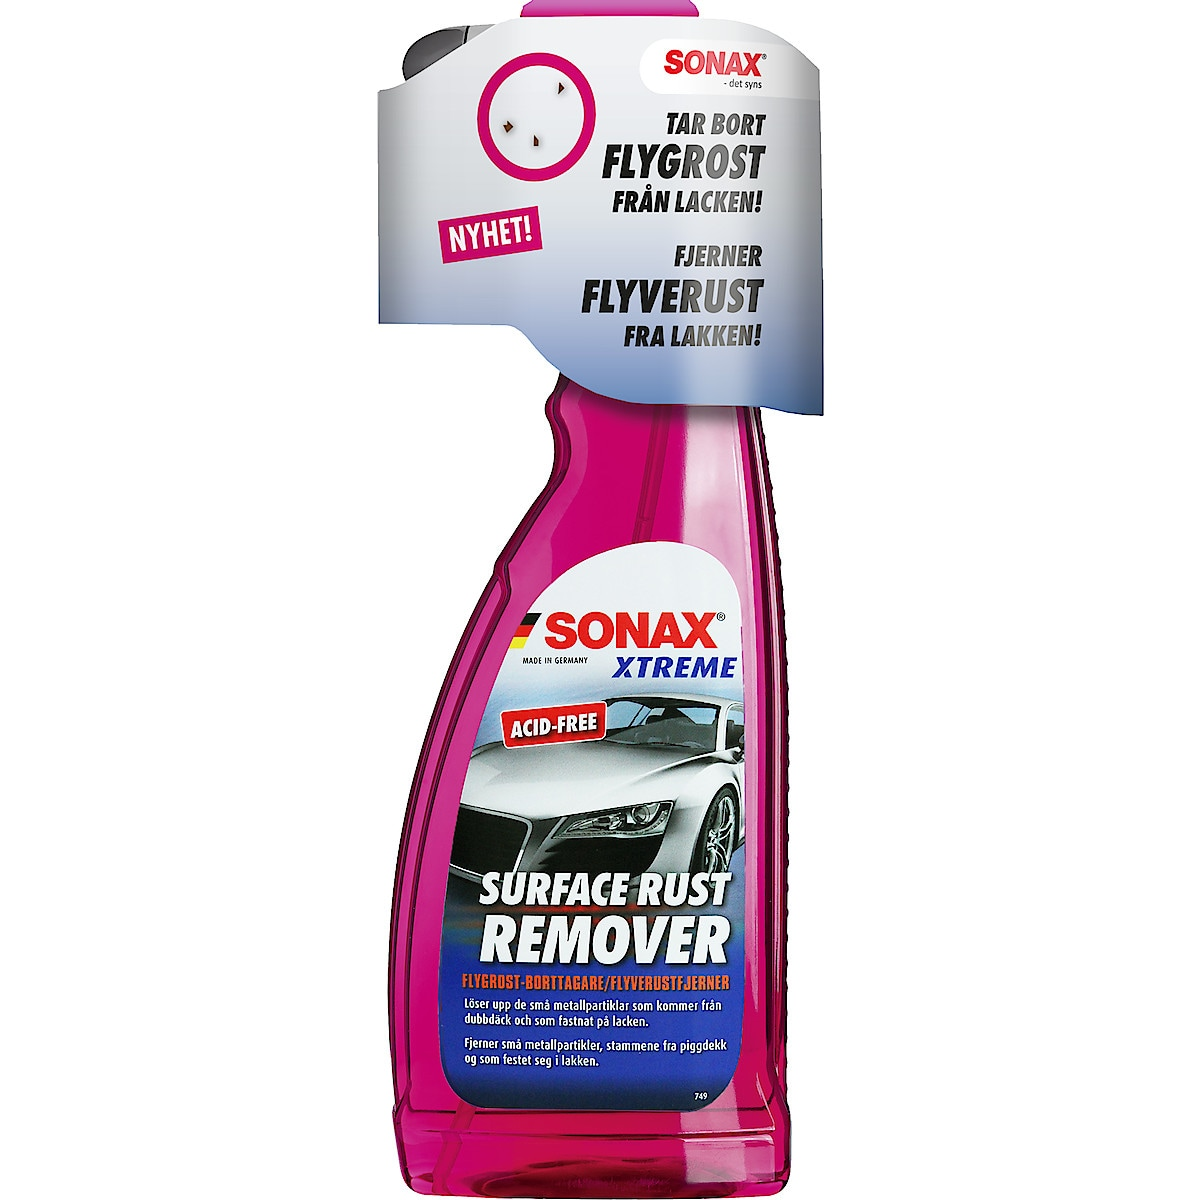 Sonax Xtreme Surface Rust Remover, 750 ml